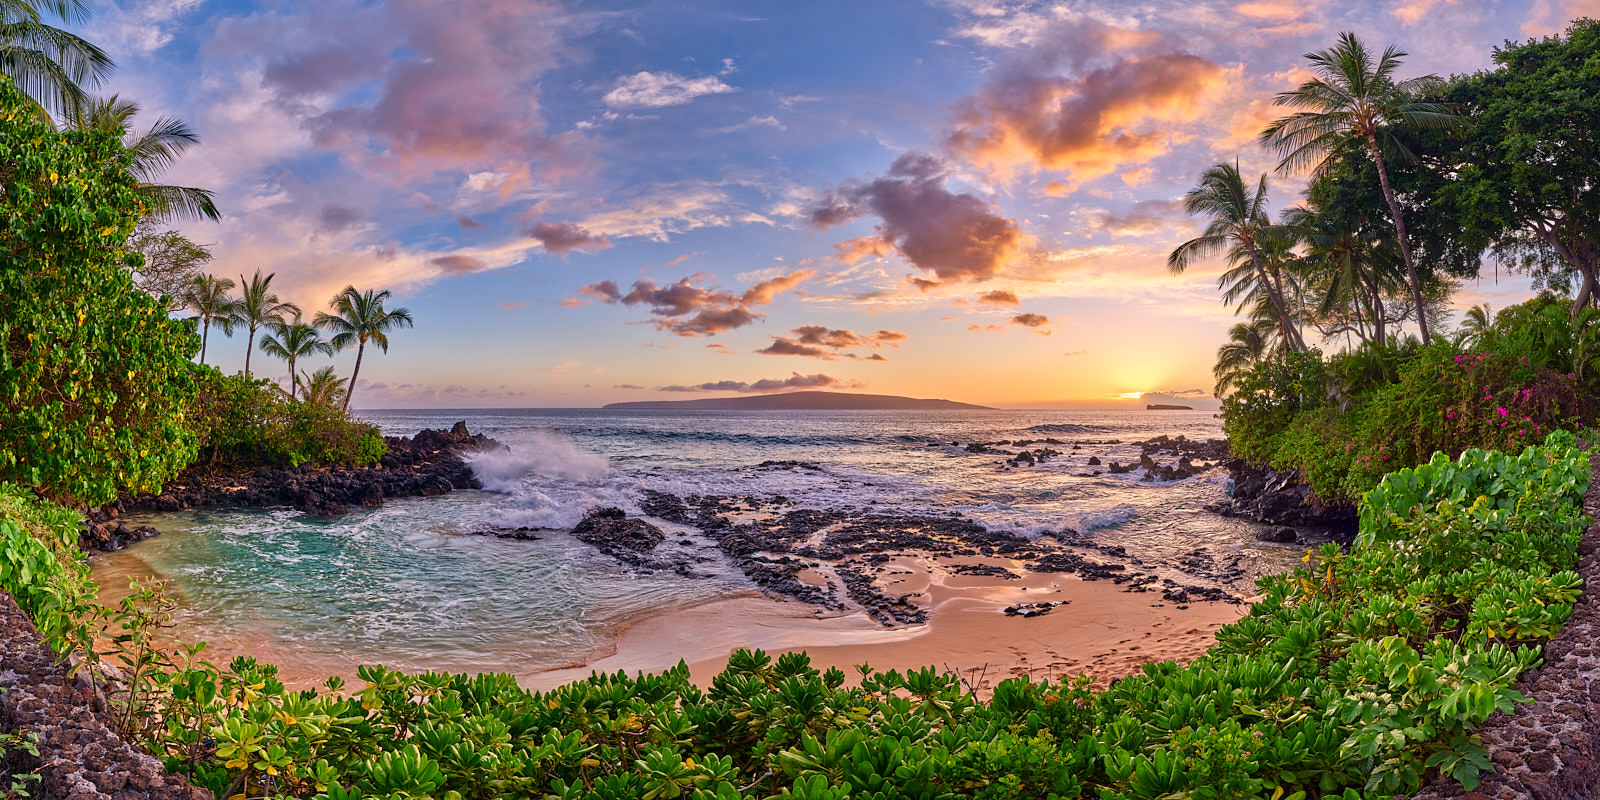 panorama of the beautiful Secret Beach in Makena on the island of Maui at sunset